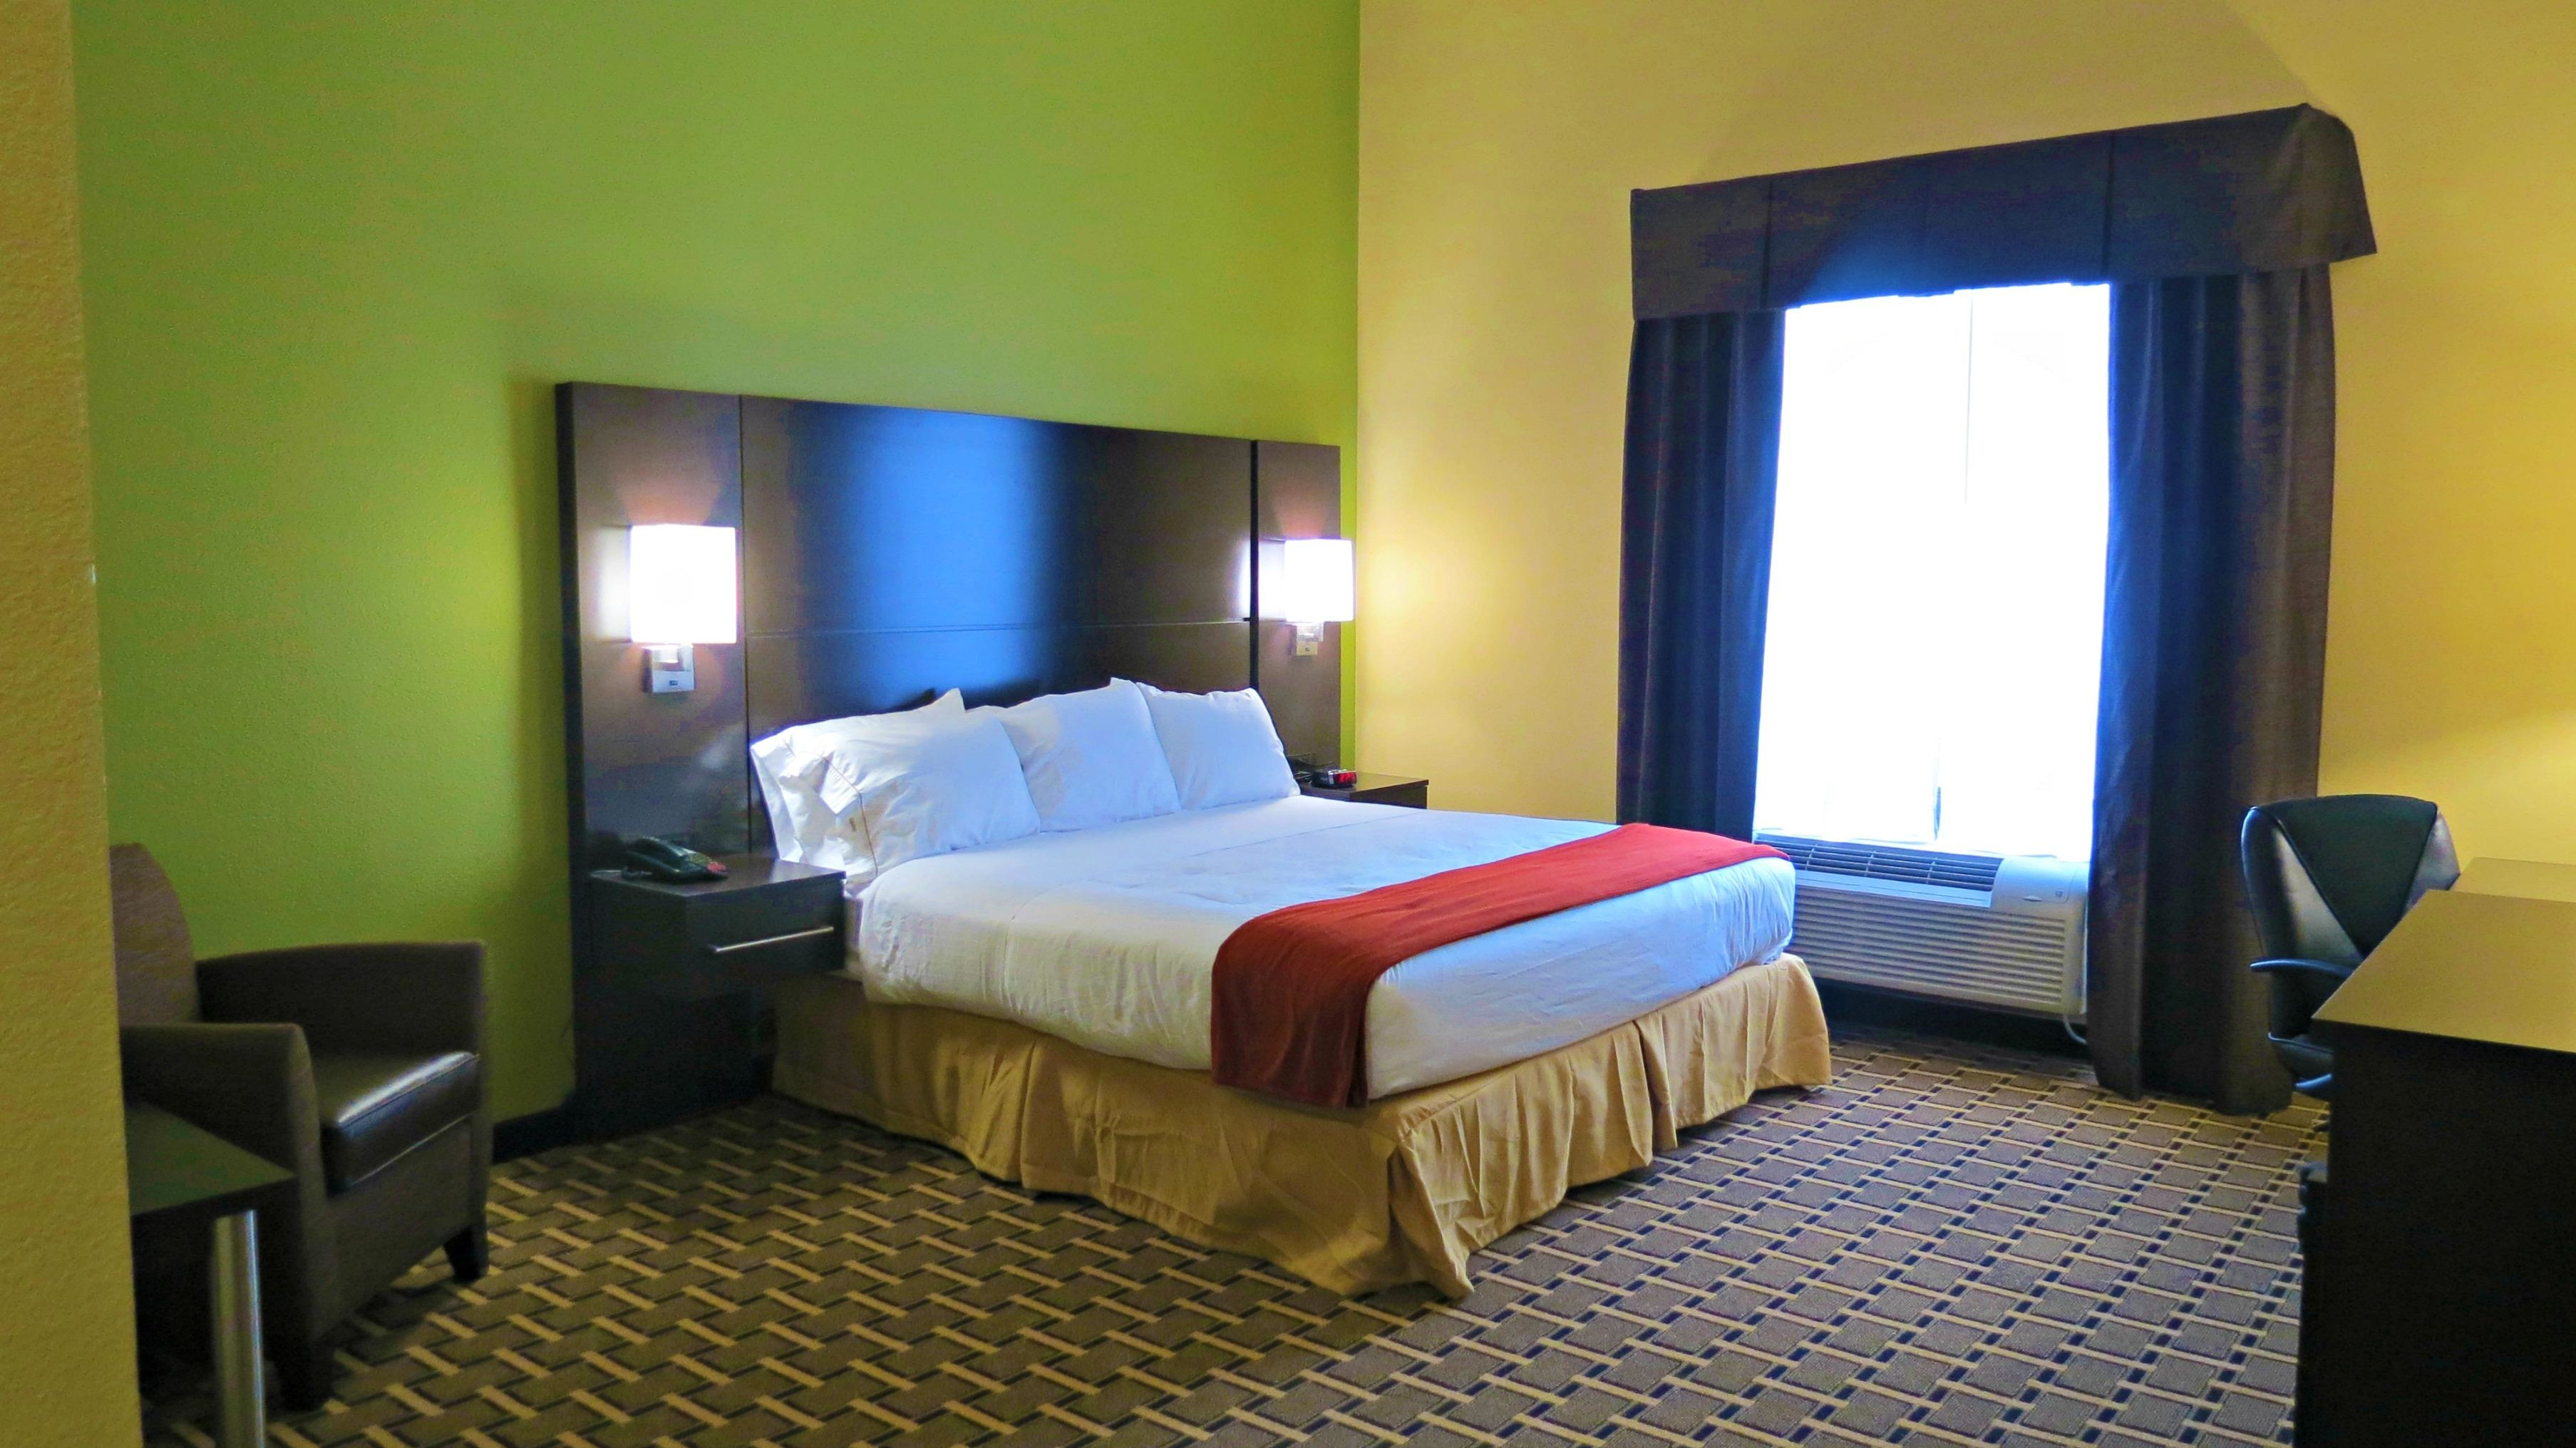 Holiday Inn Express & Suites image 7